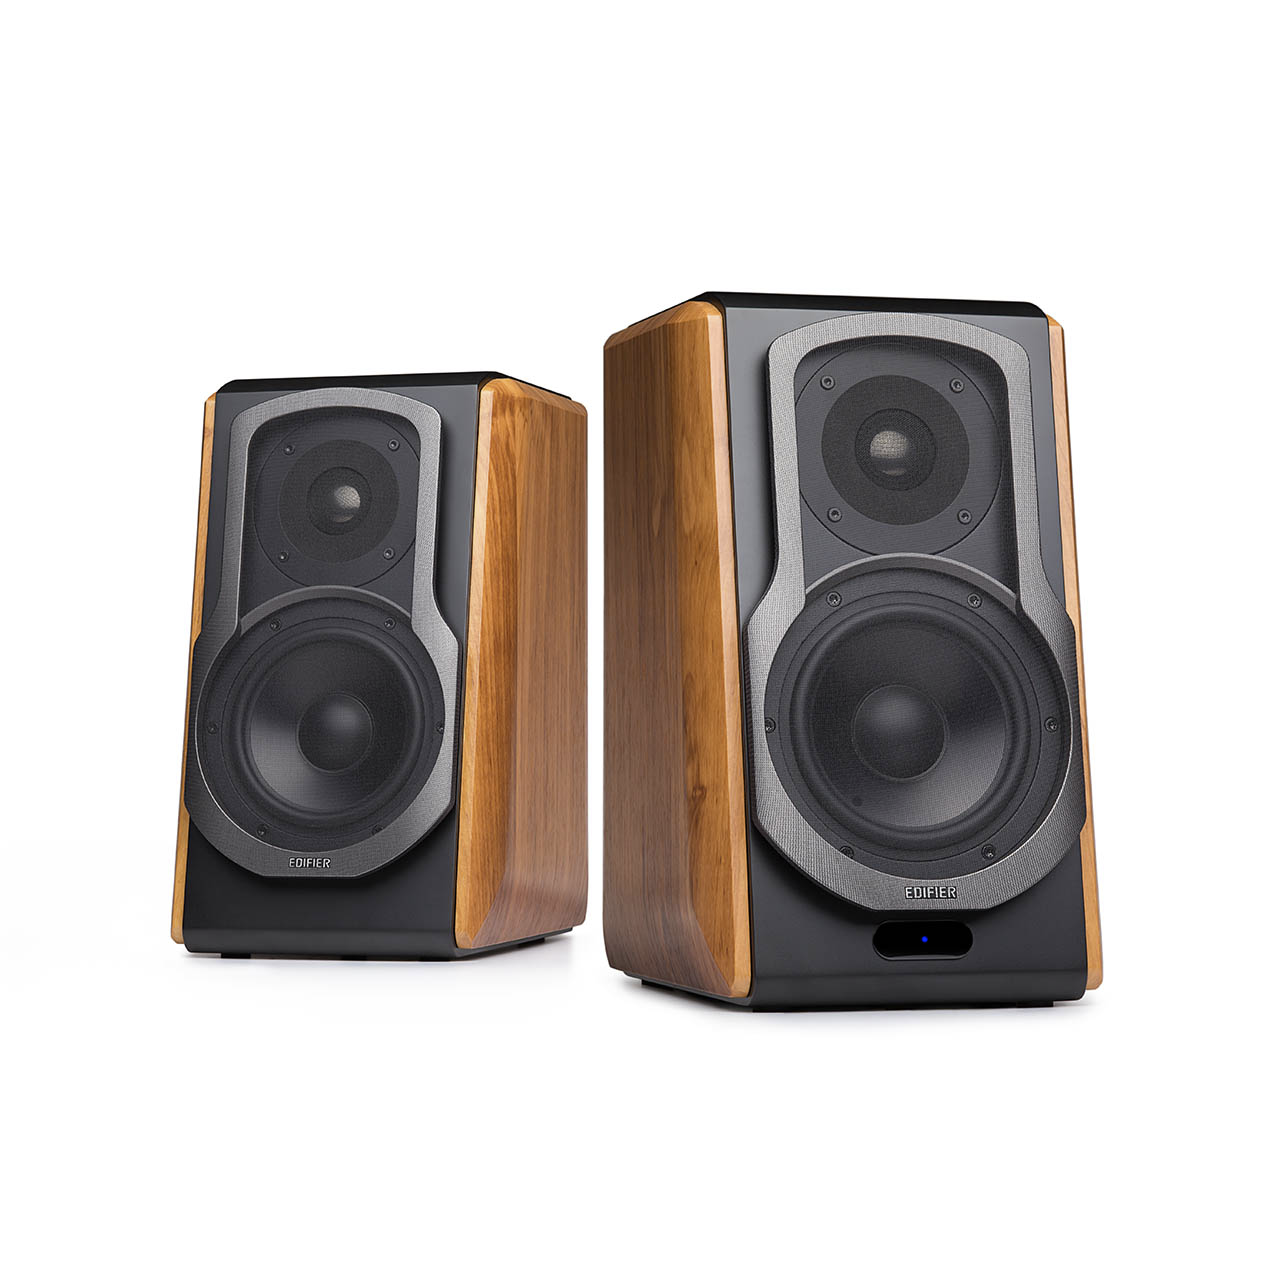 S1000DB Audiophile Active Bookshelf Speakers